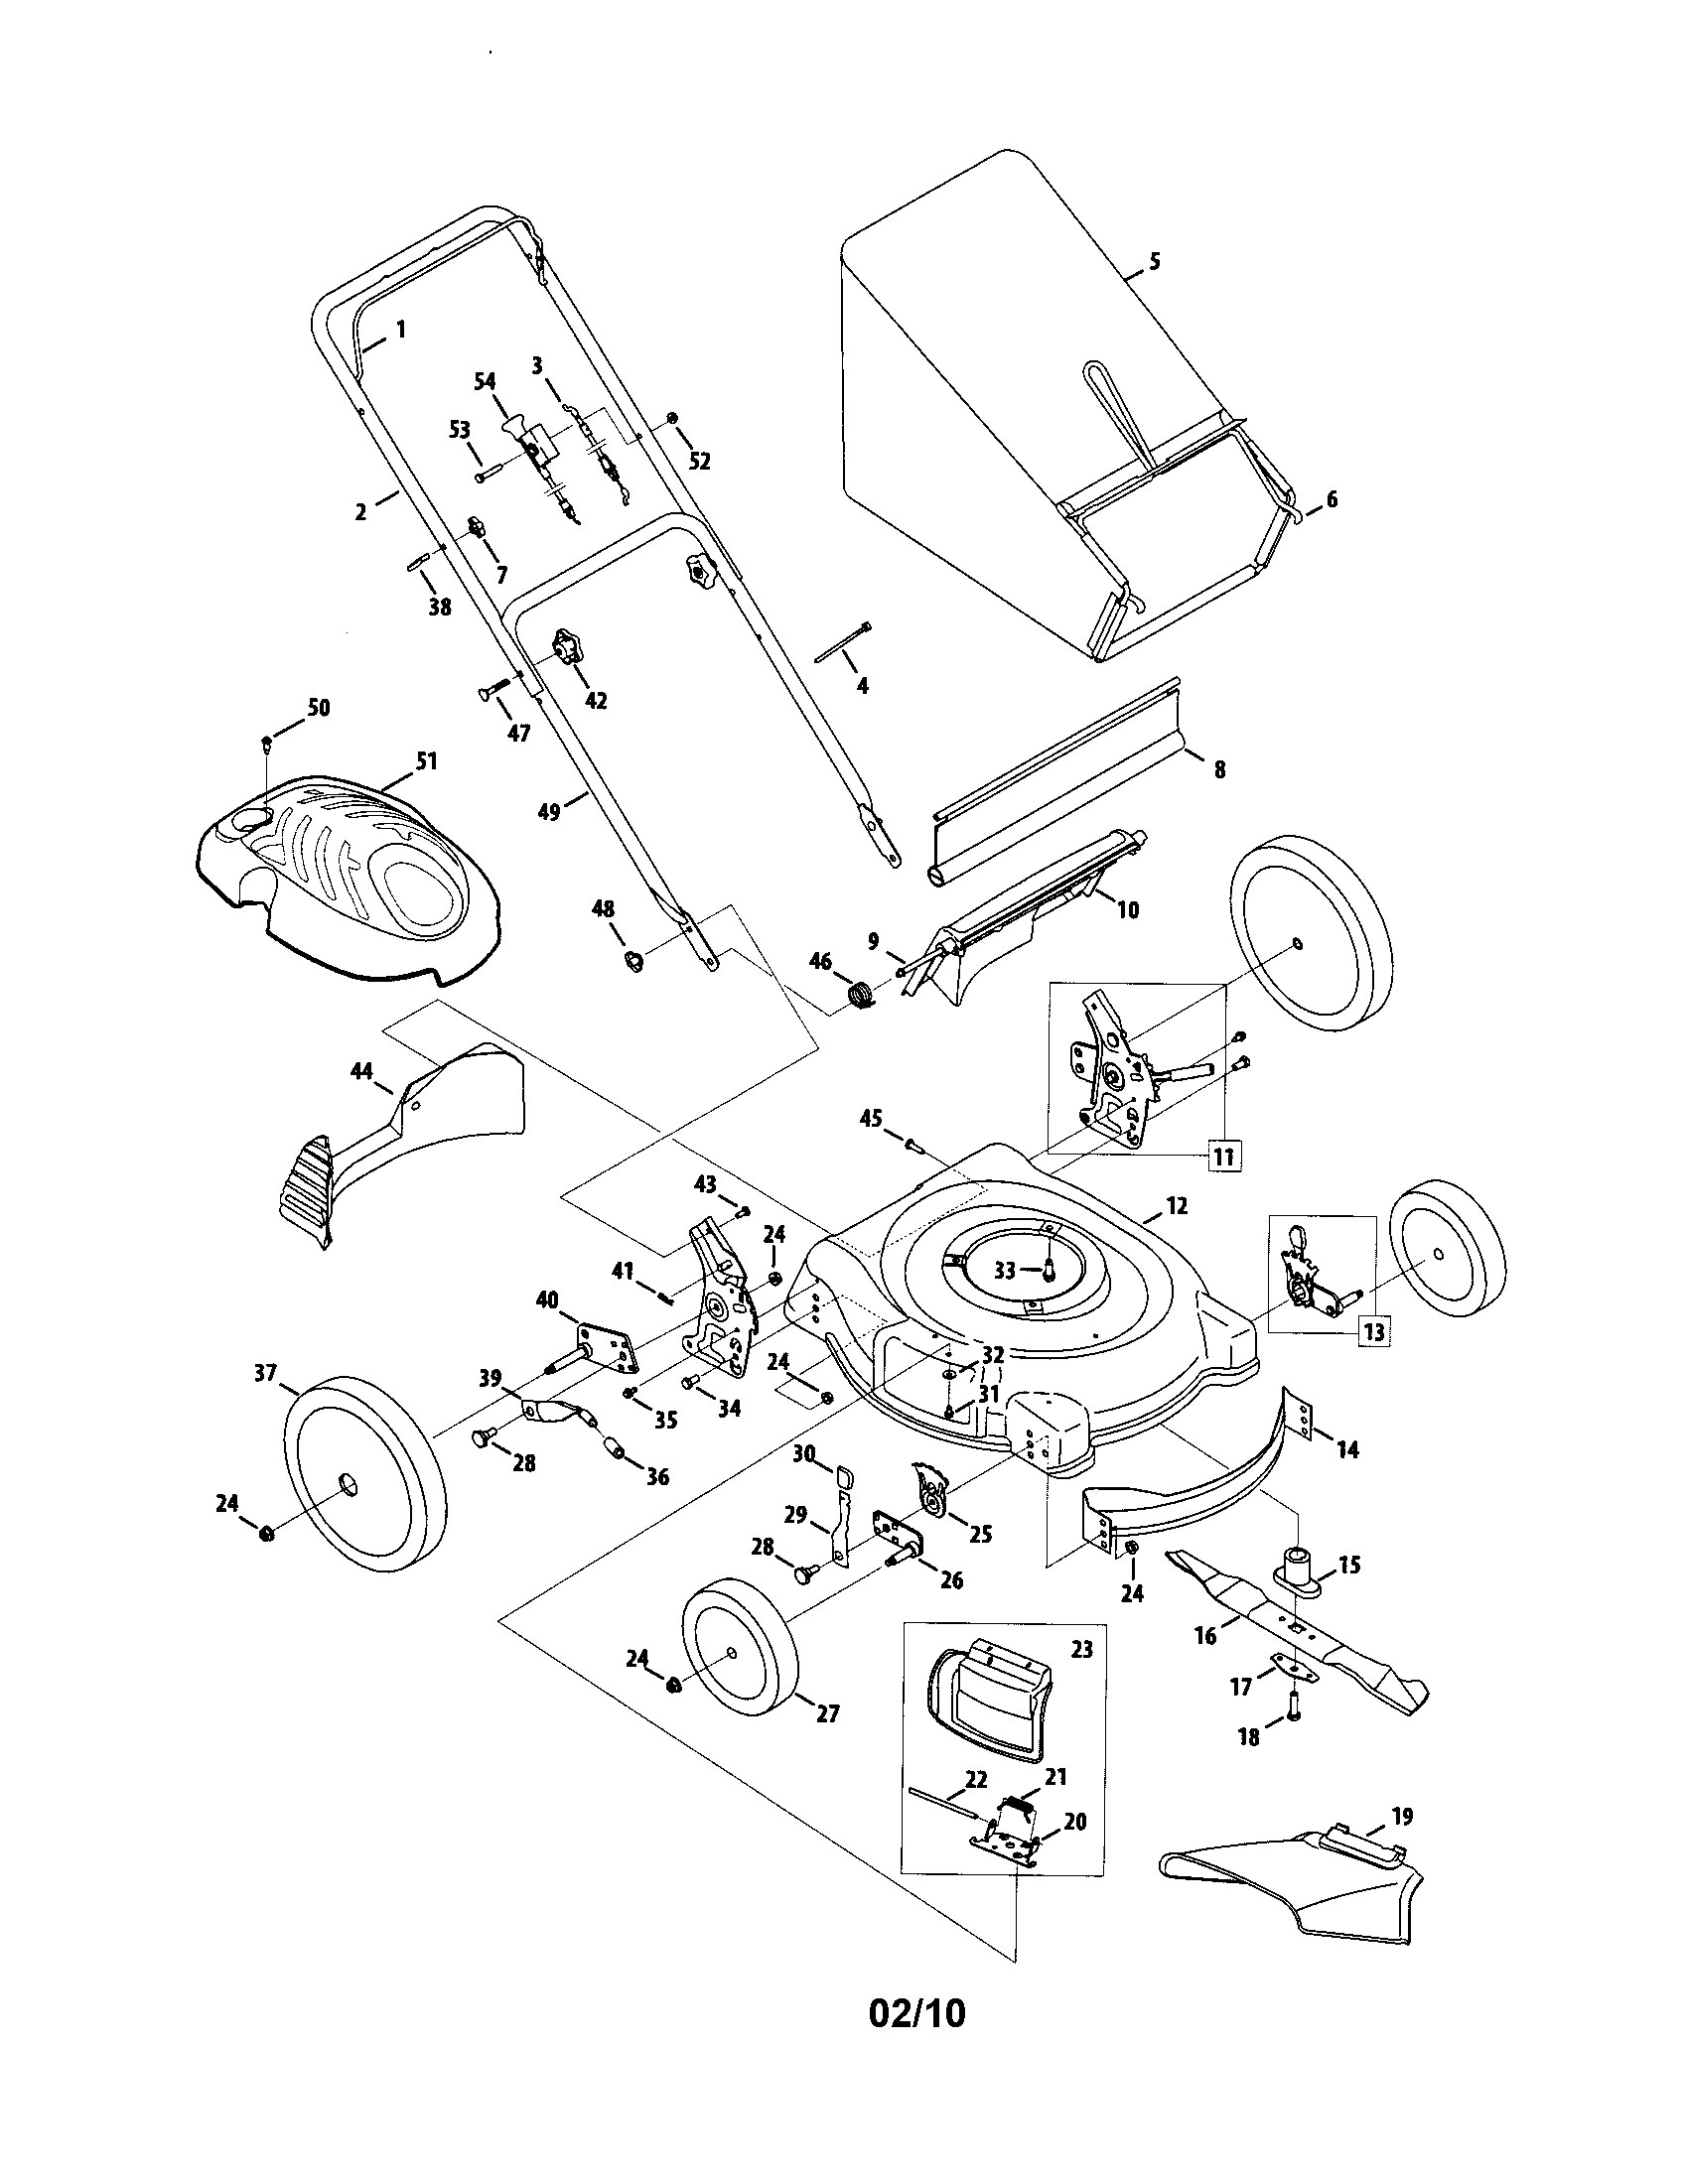 hight resolution of yardman lawn tractor wiring diagram